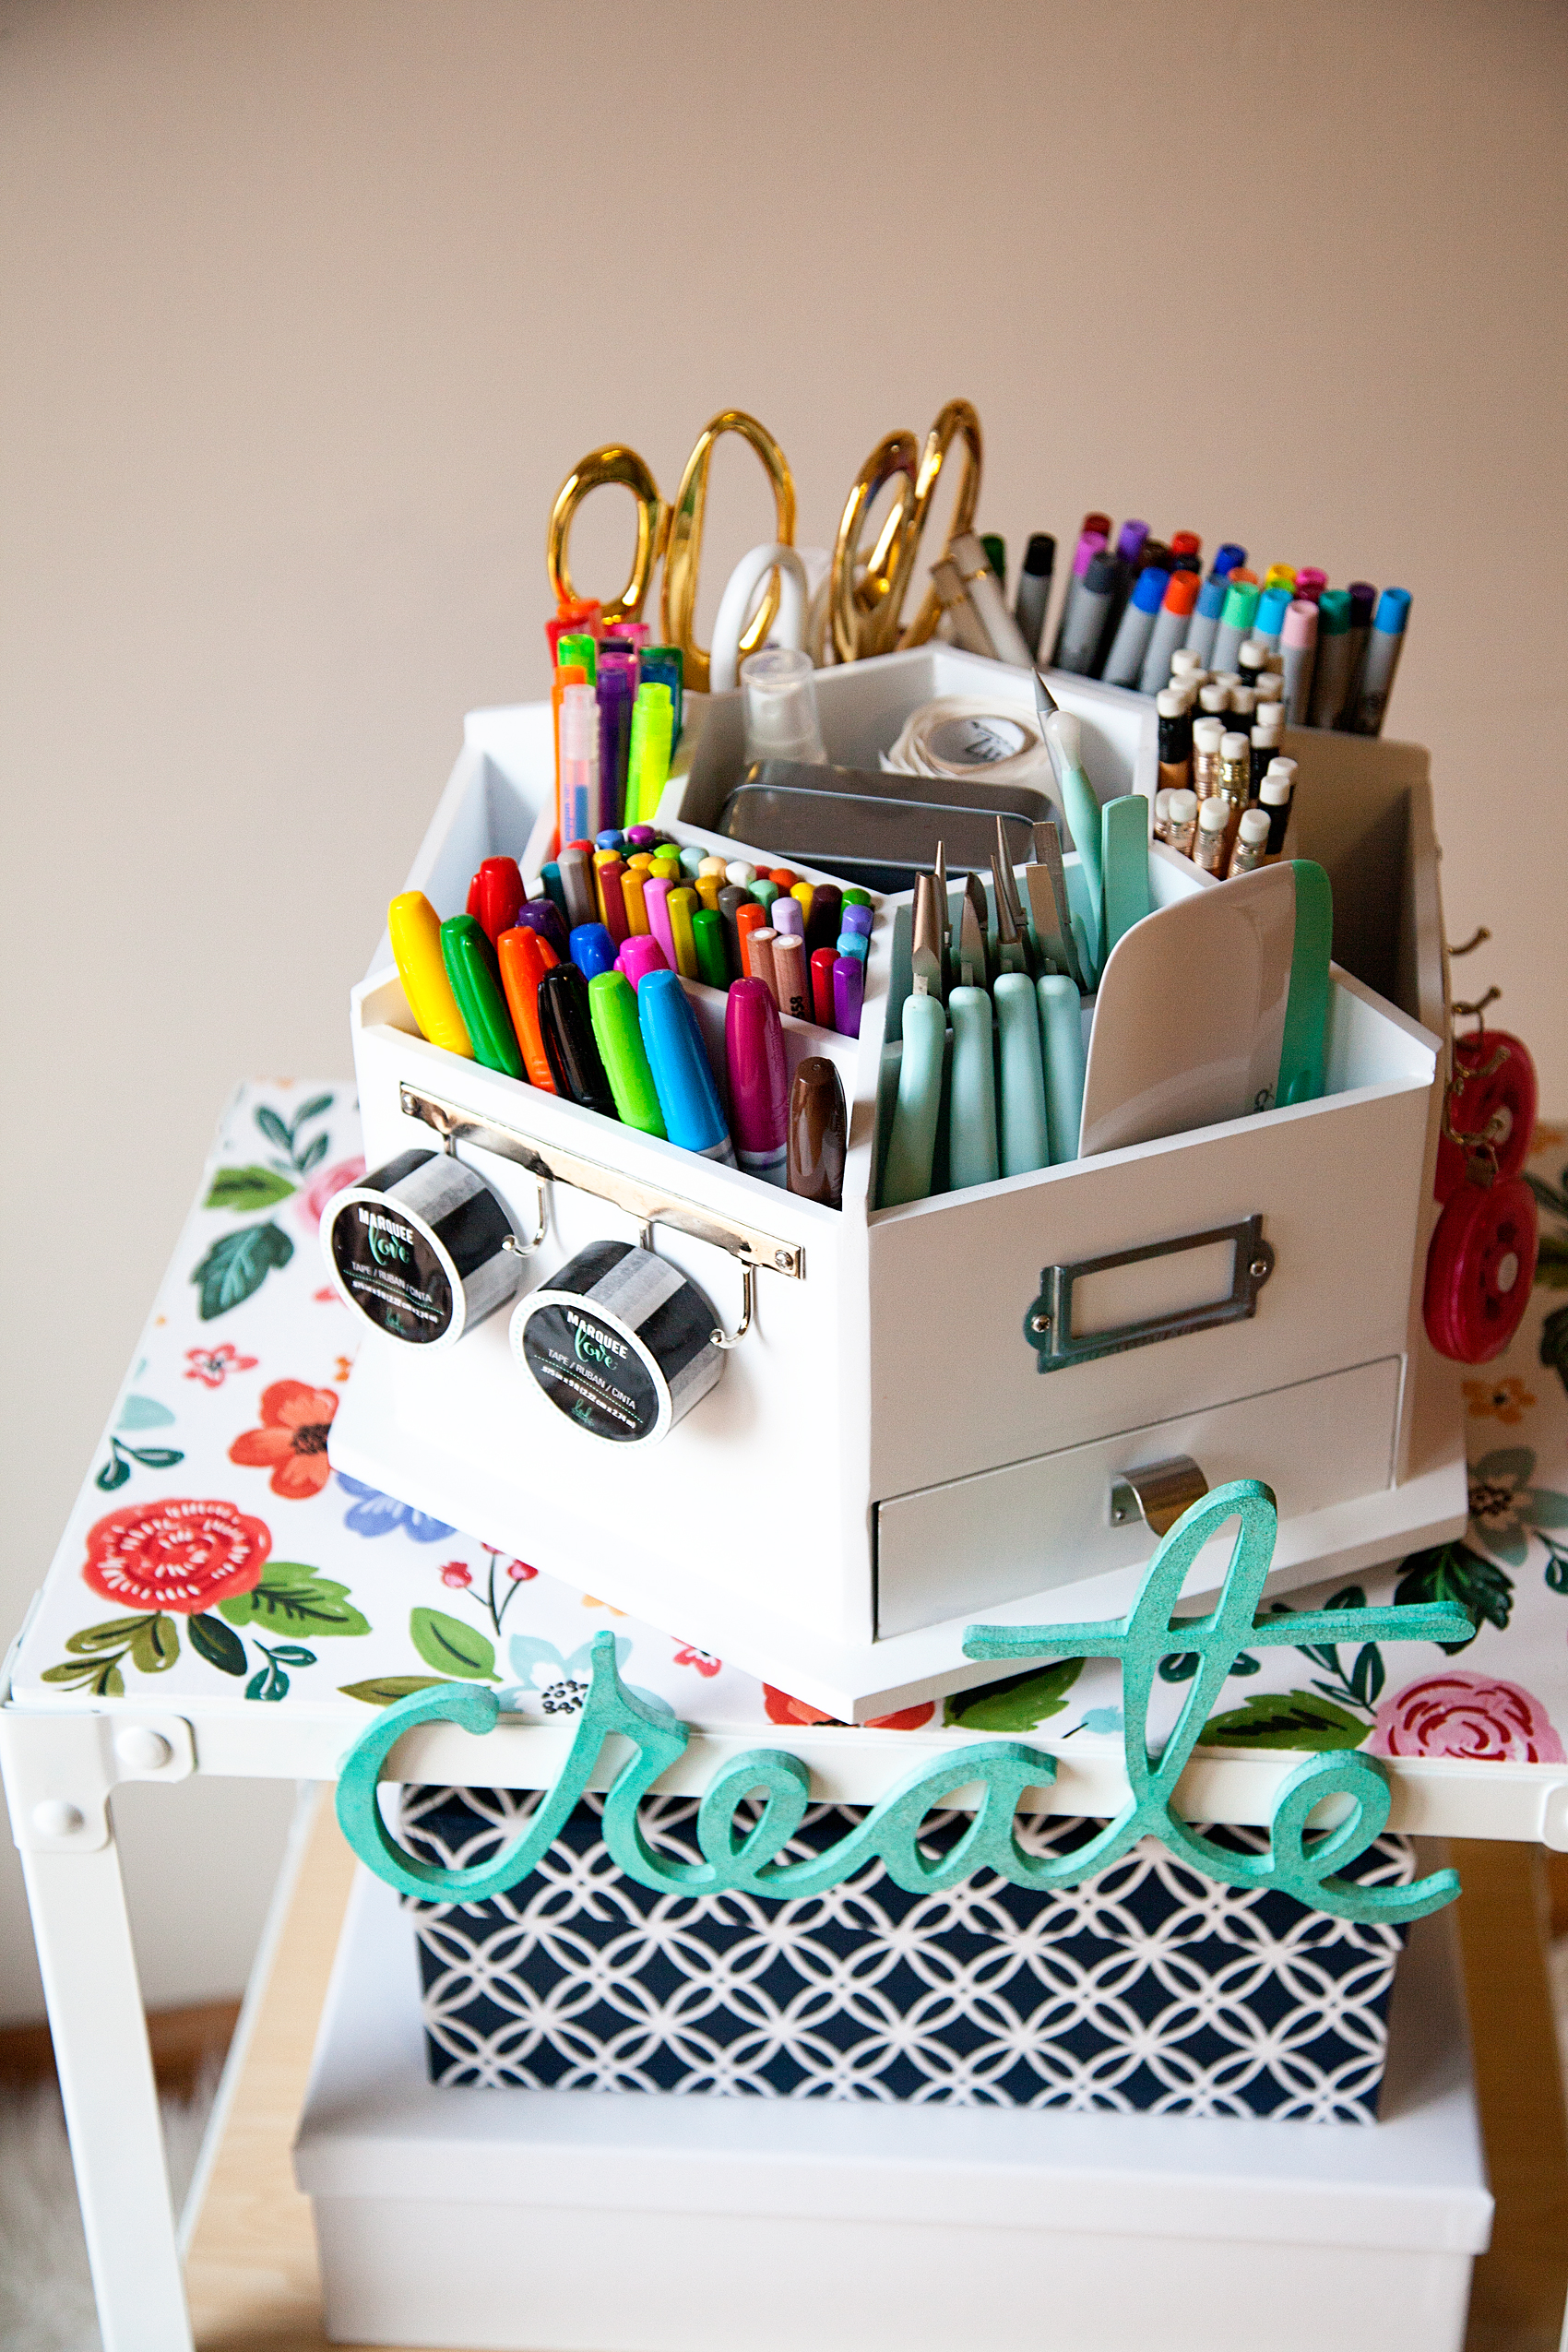 diy-creative-art-station-from-whipperberry-11